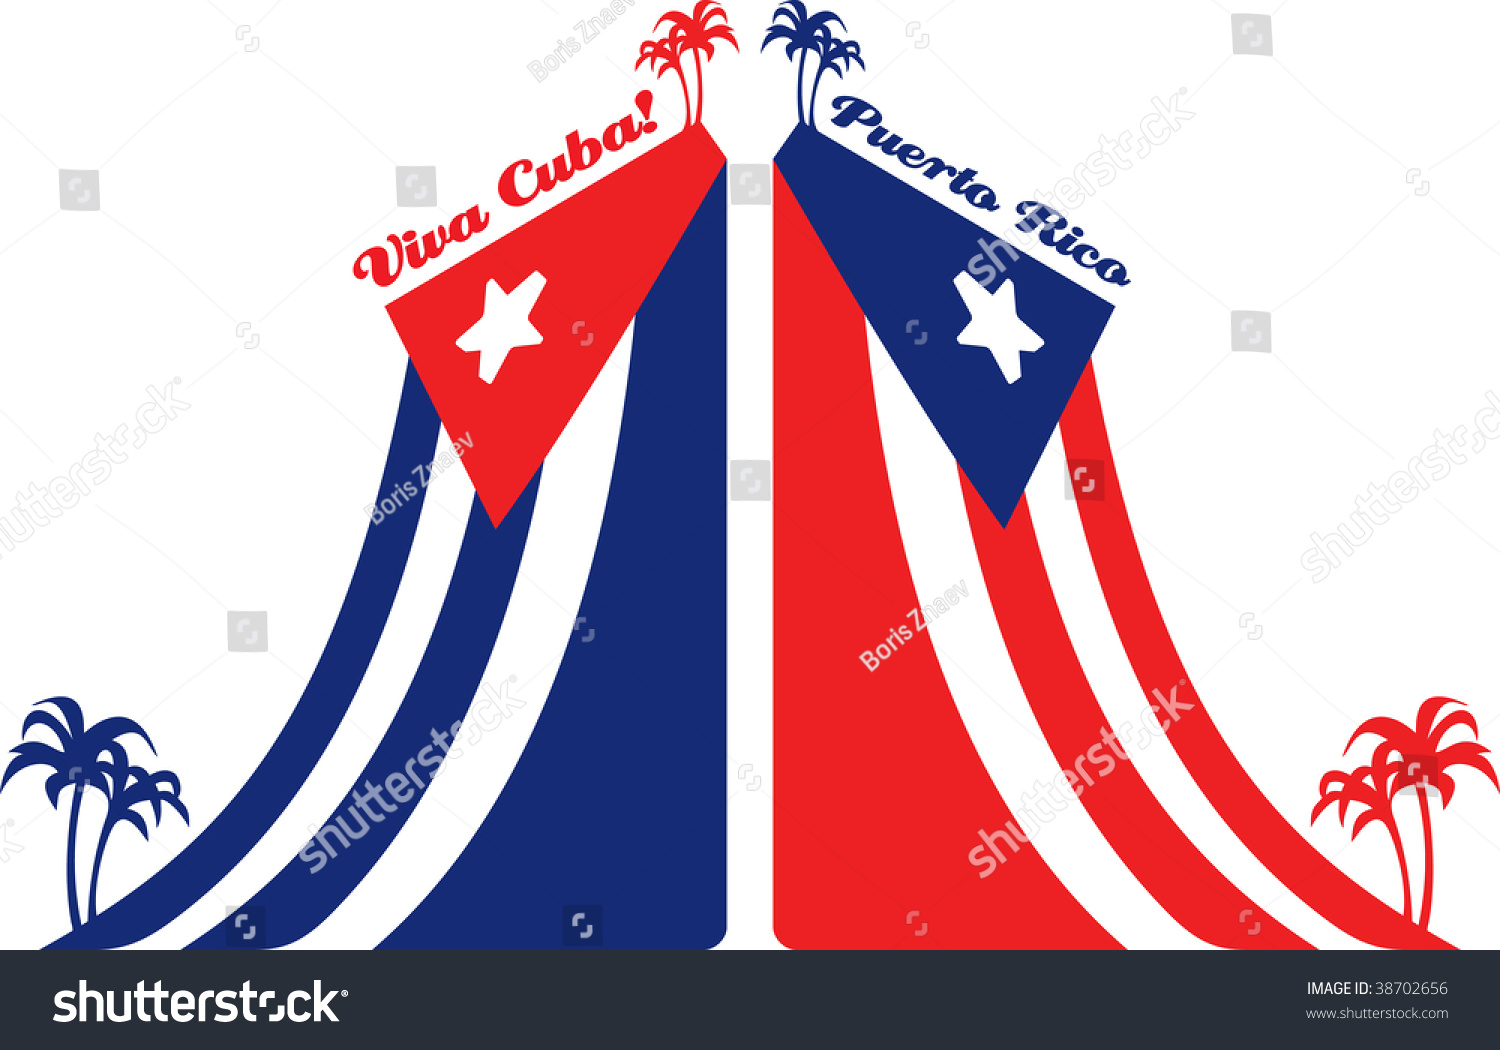 Cuba puerto rico flag palm stock illustration 38702656 shutterstock cuba and puerto rico flag and palm biocorpaavc Image collections